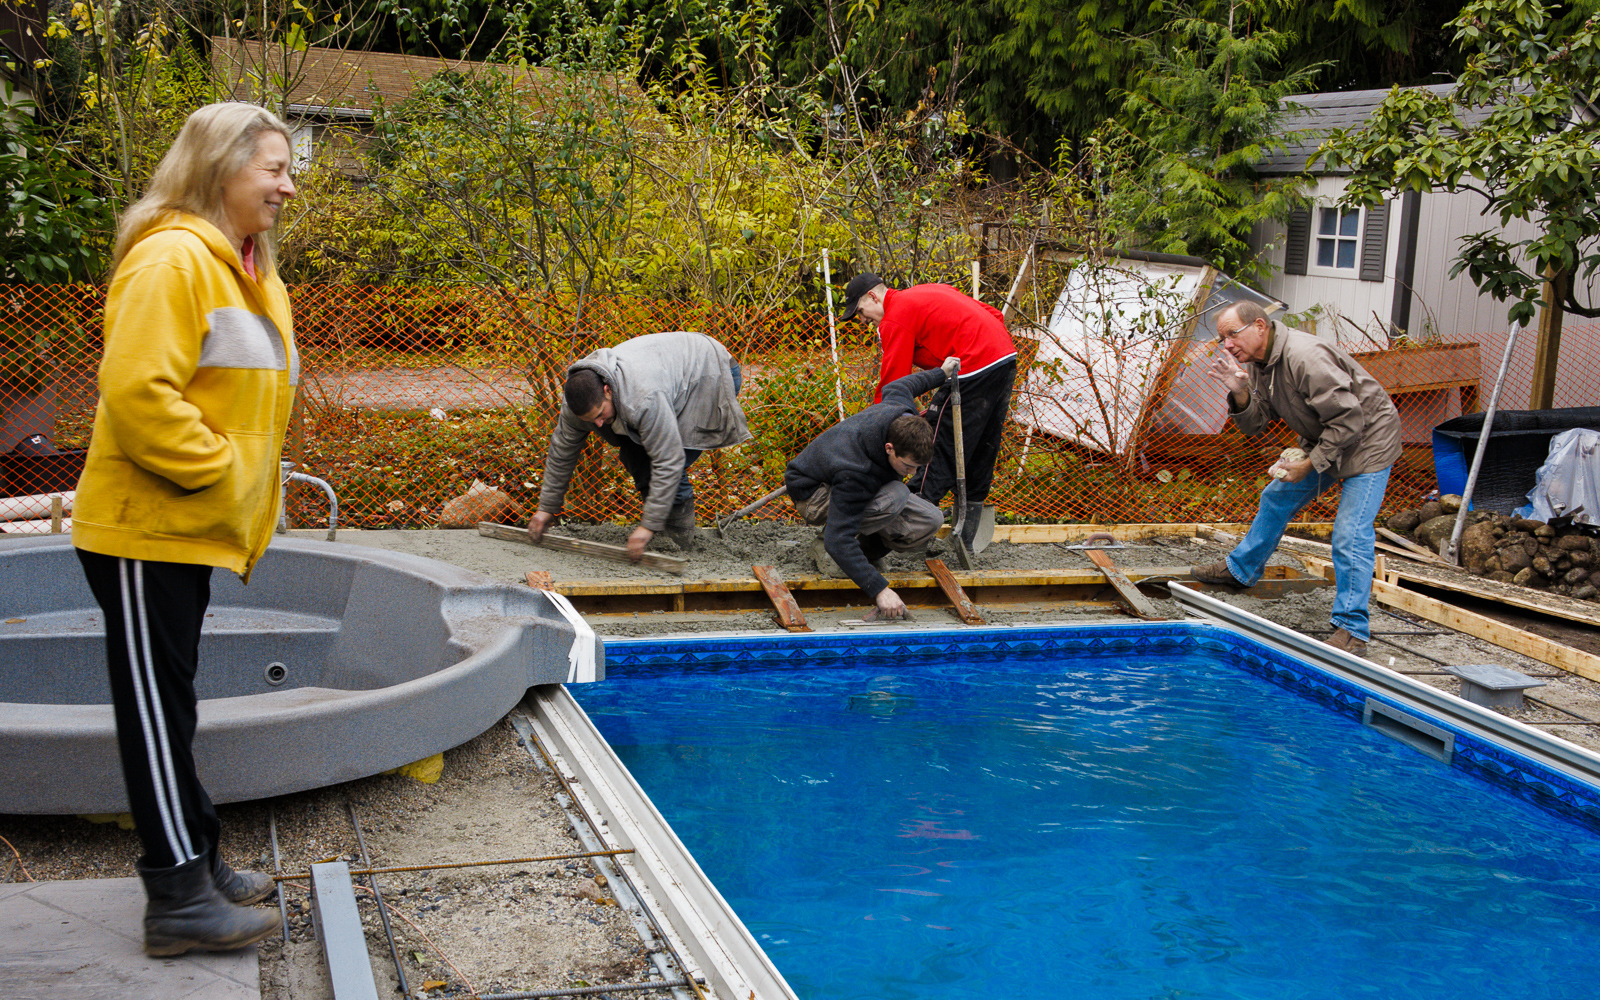 Aquatic Pools Ltd in Surrey: Final part of the installation